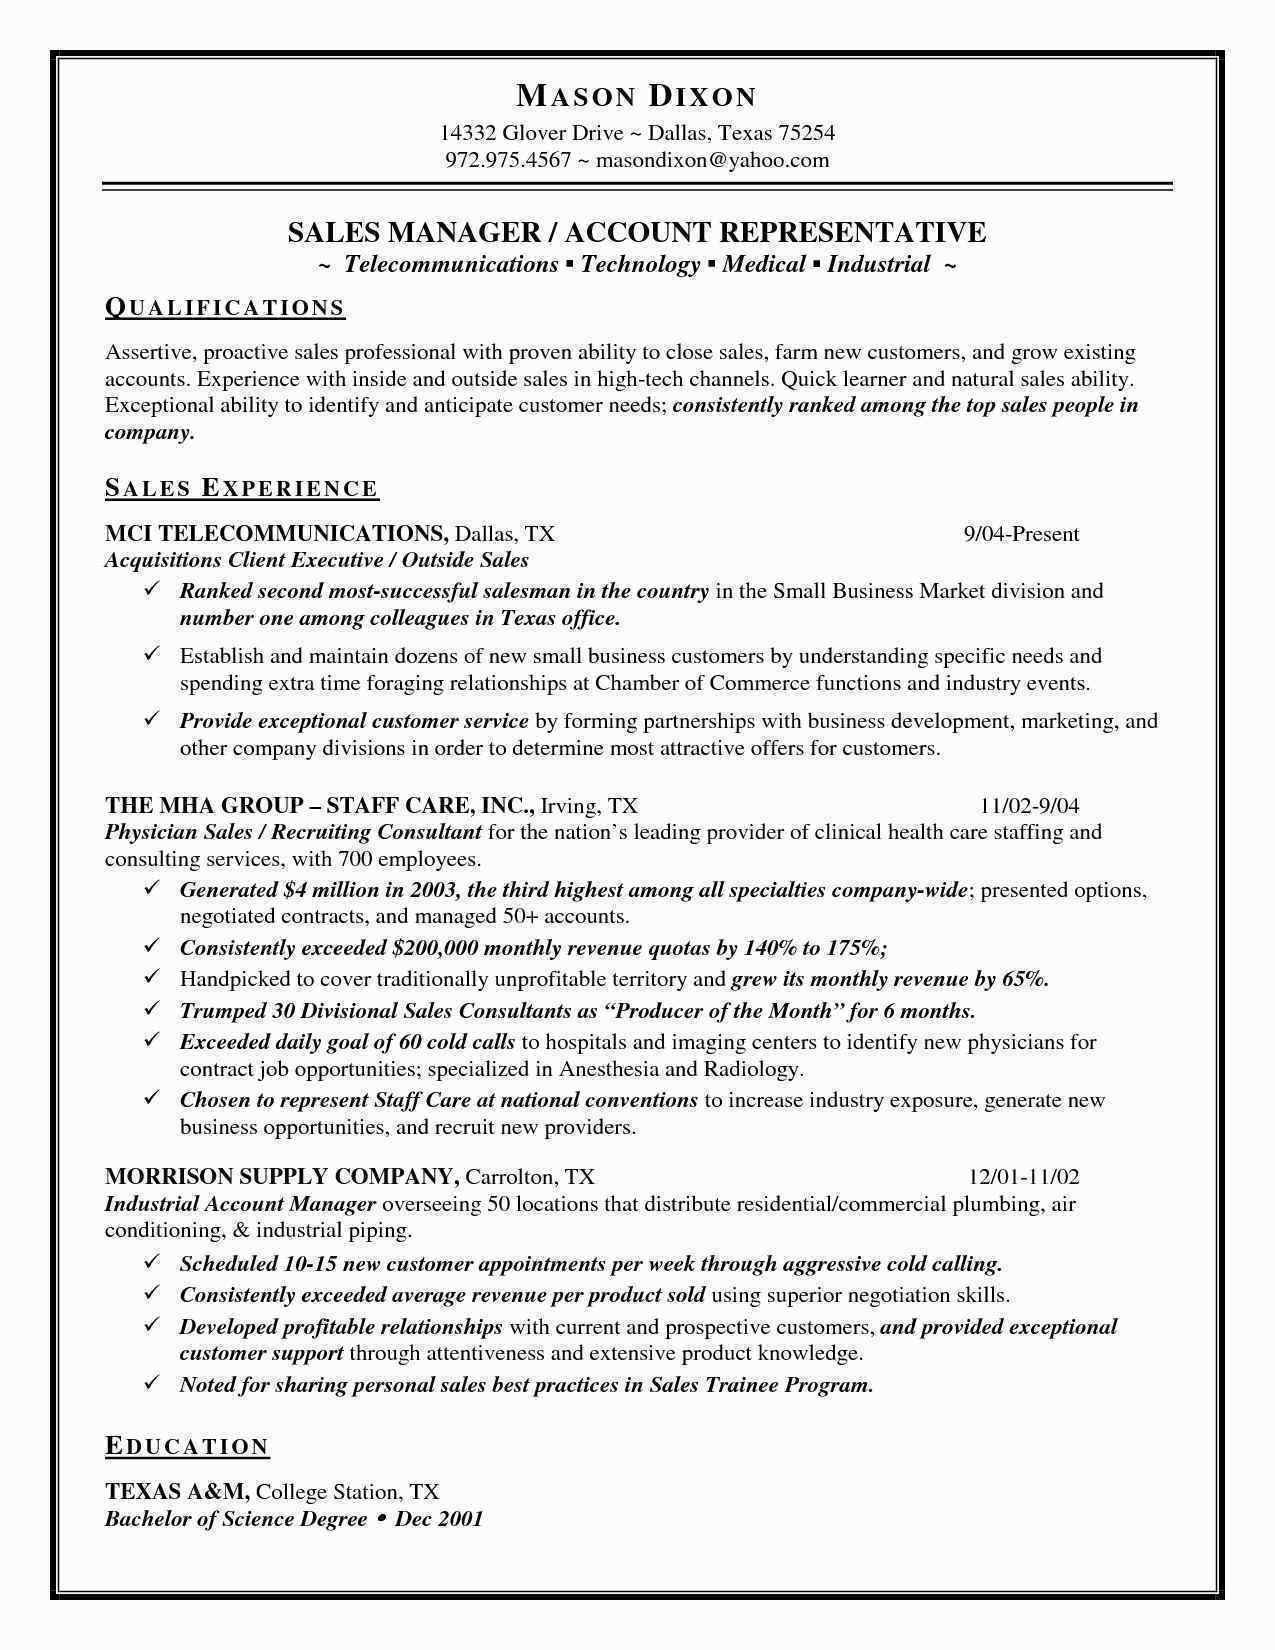 Resume Template Sales Manager - Retail Resume Sample Best Sales Resume Sample New Retail Resume